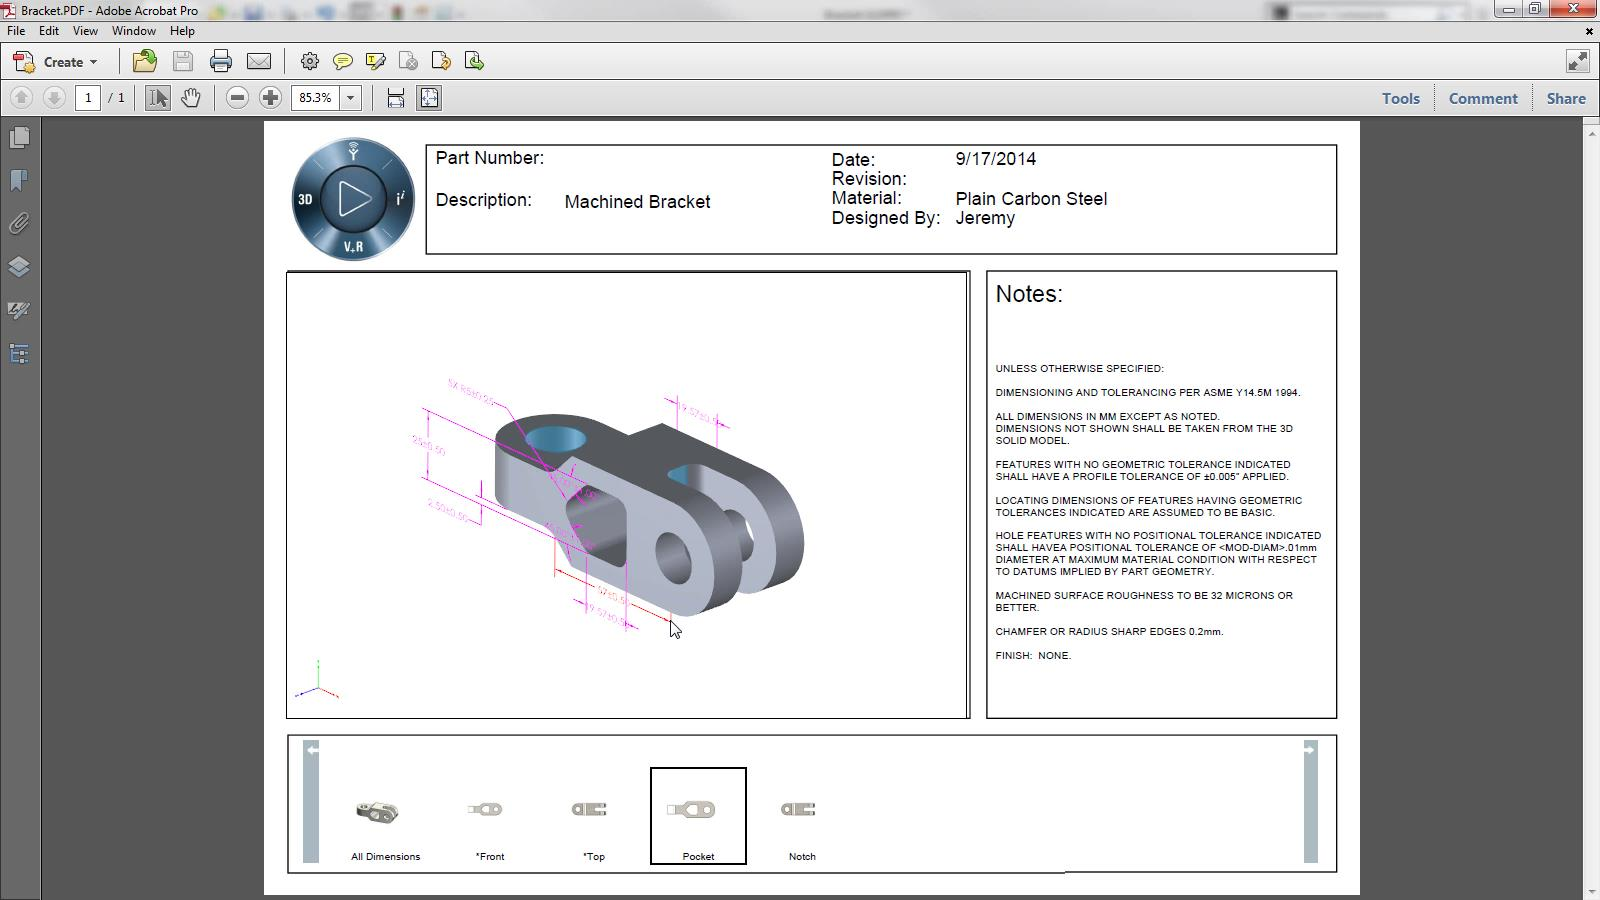 SOLIDWORKS Shorts: Model Based Definition (MBD) and Engineering 4.0